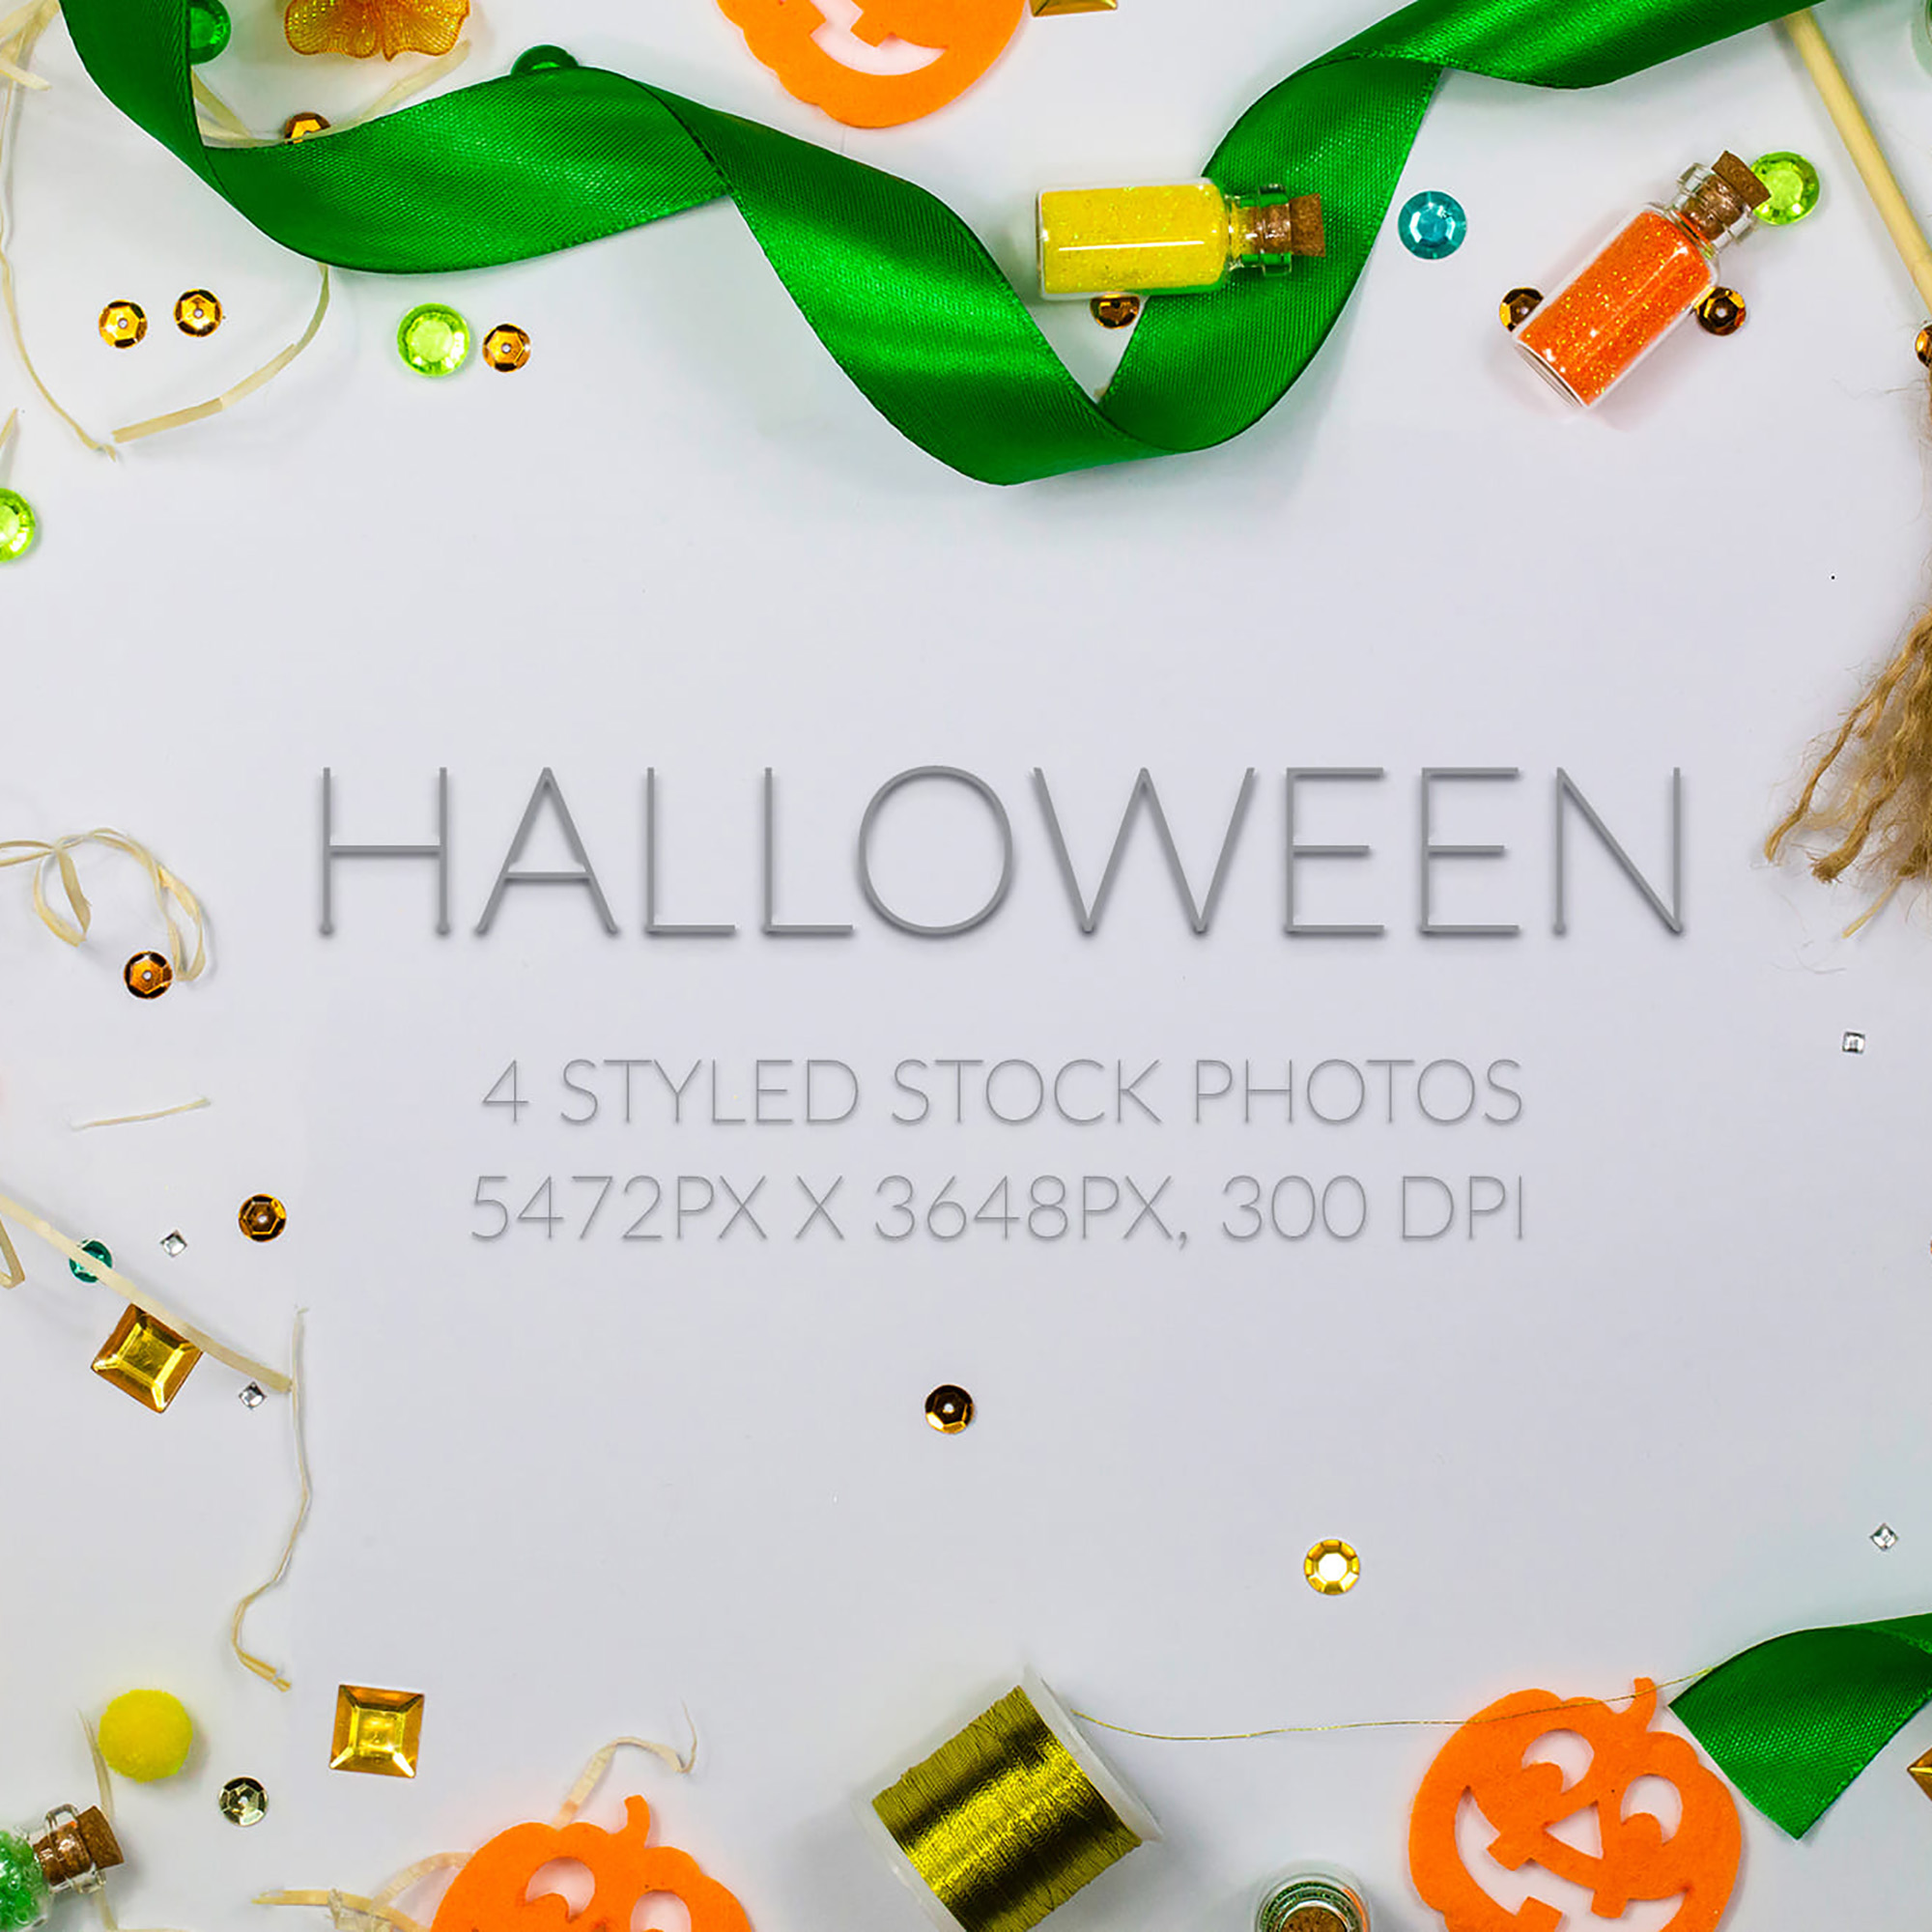 Multiple Exposure Photoshop Effect - Halloween Stock Photos